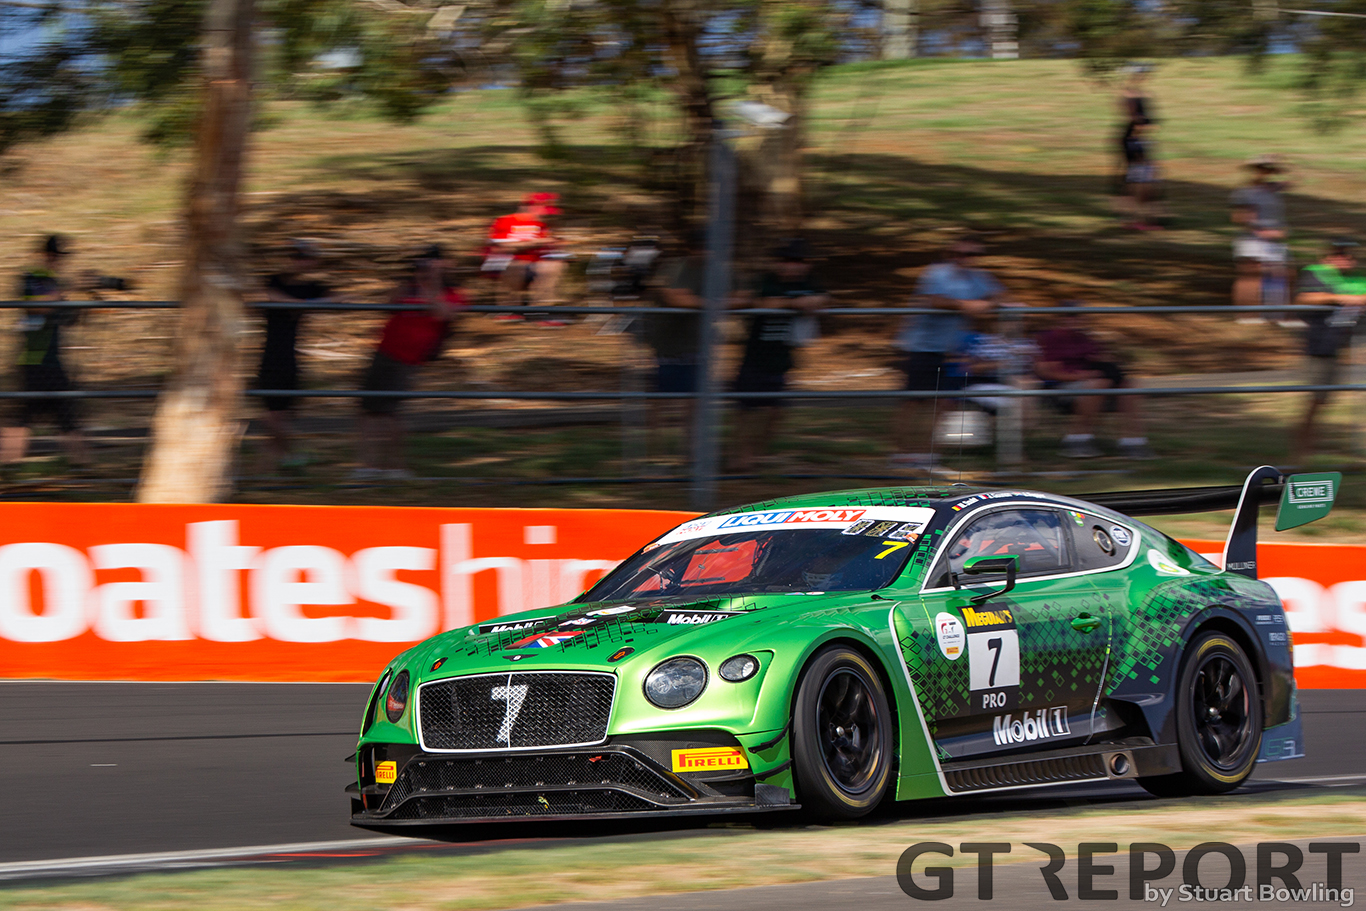 Bathurst 12 Hour: Bentley takes long-awaited Bathurst victory